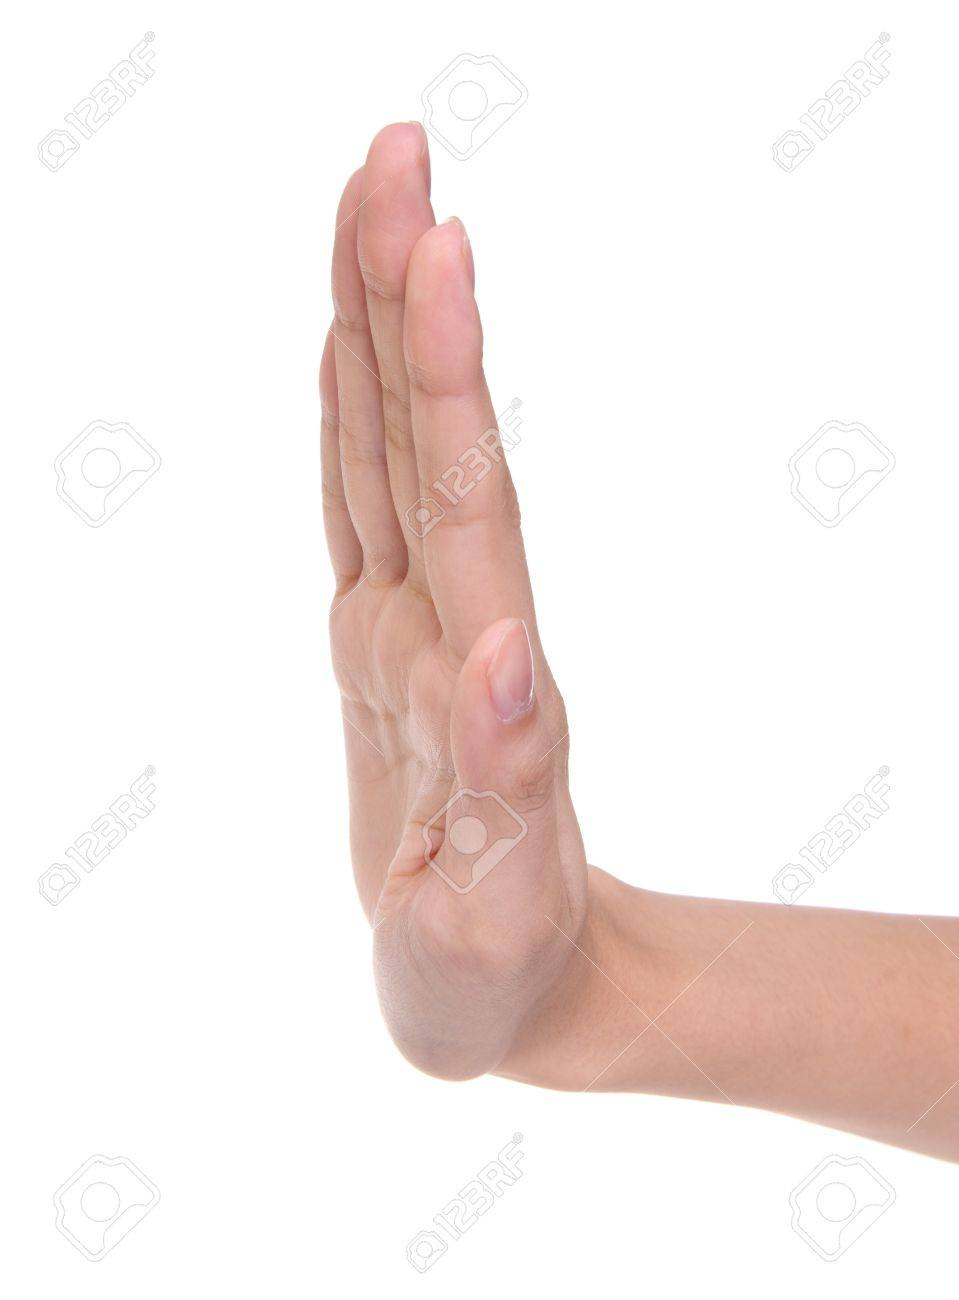 Forbidding gesture of a hand on a white background Stock Photo - 7728479